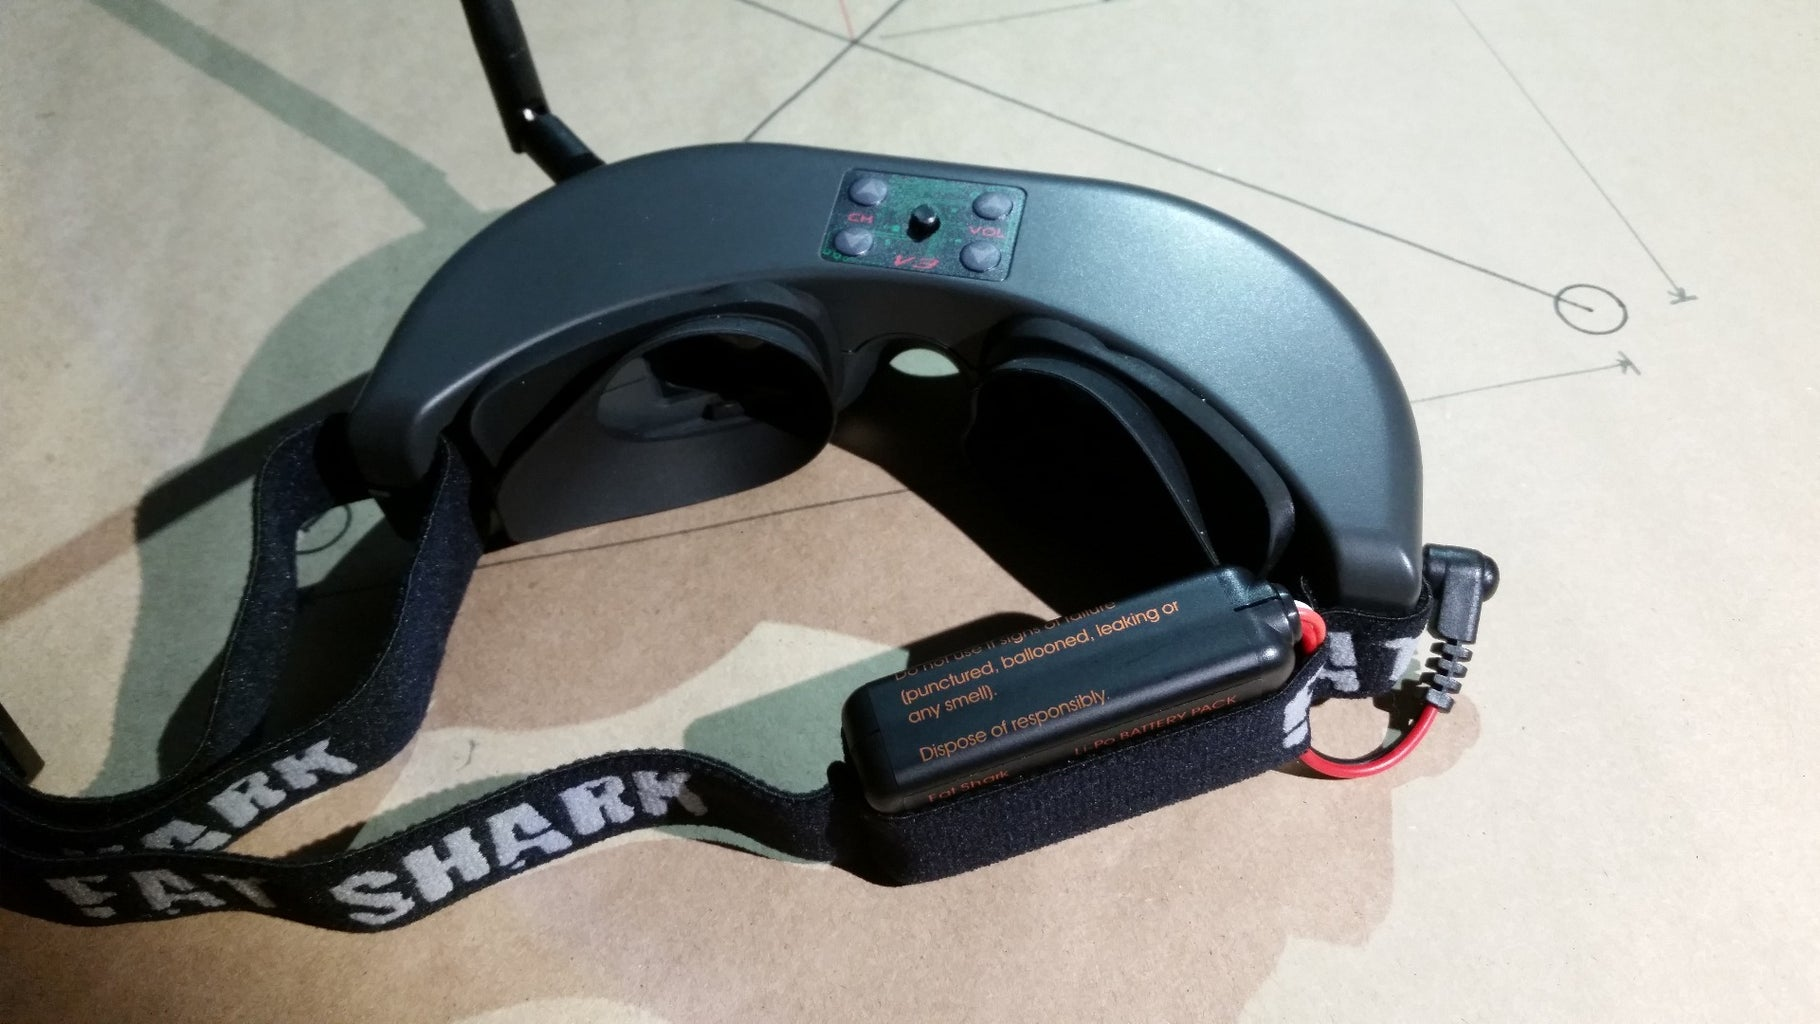 Attach Battery and Antenna to Fat Shark Goggles